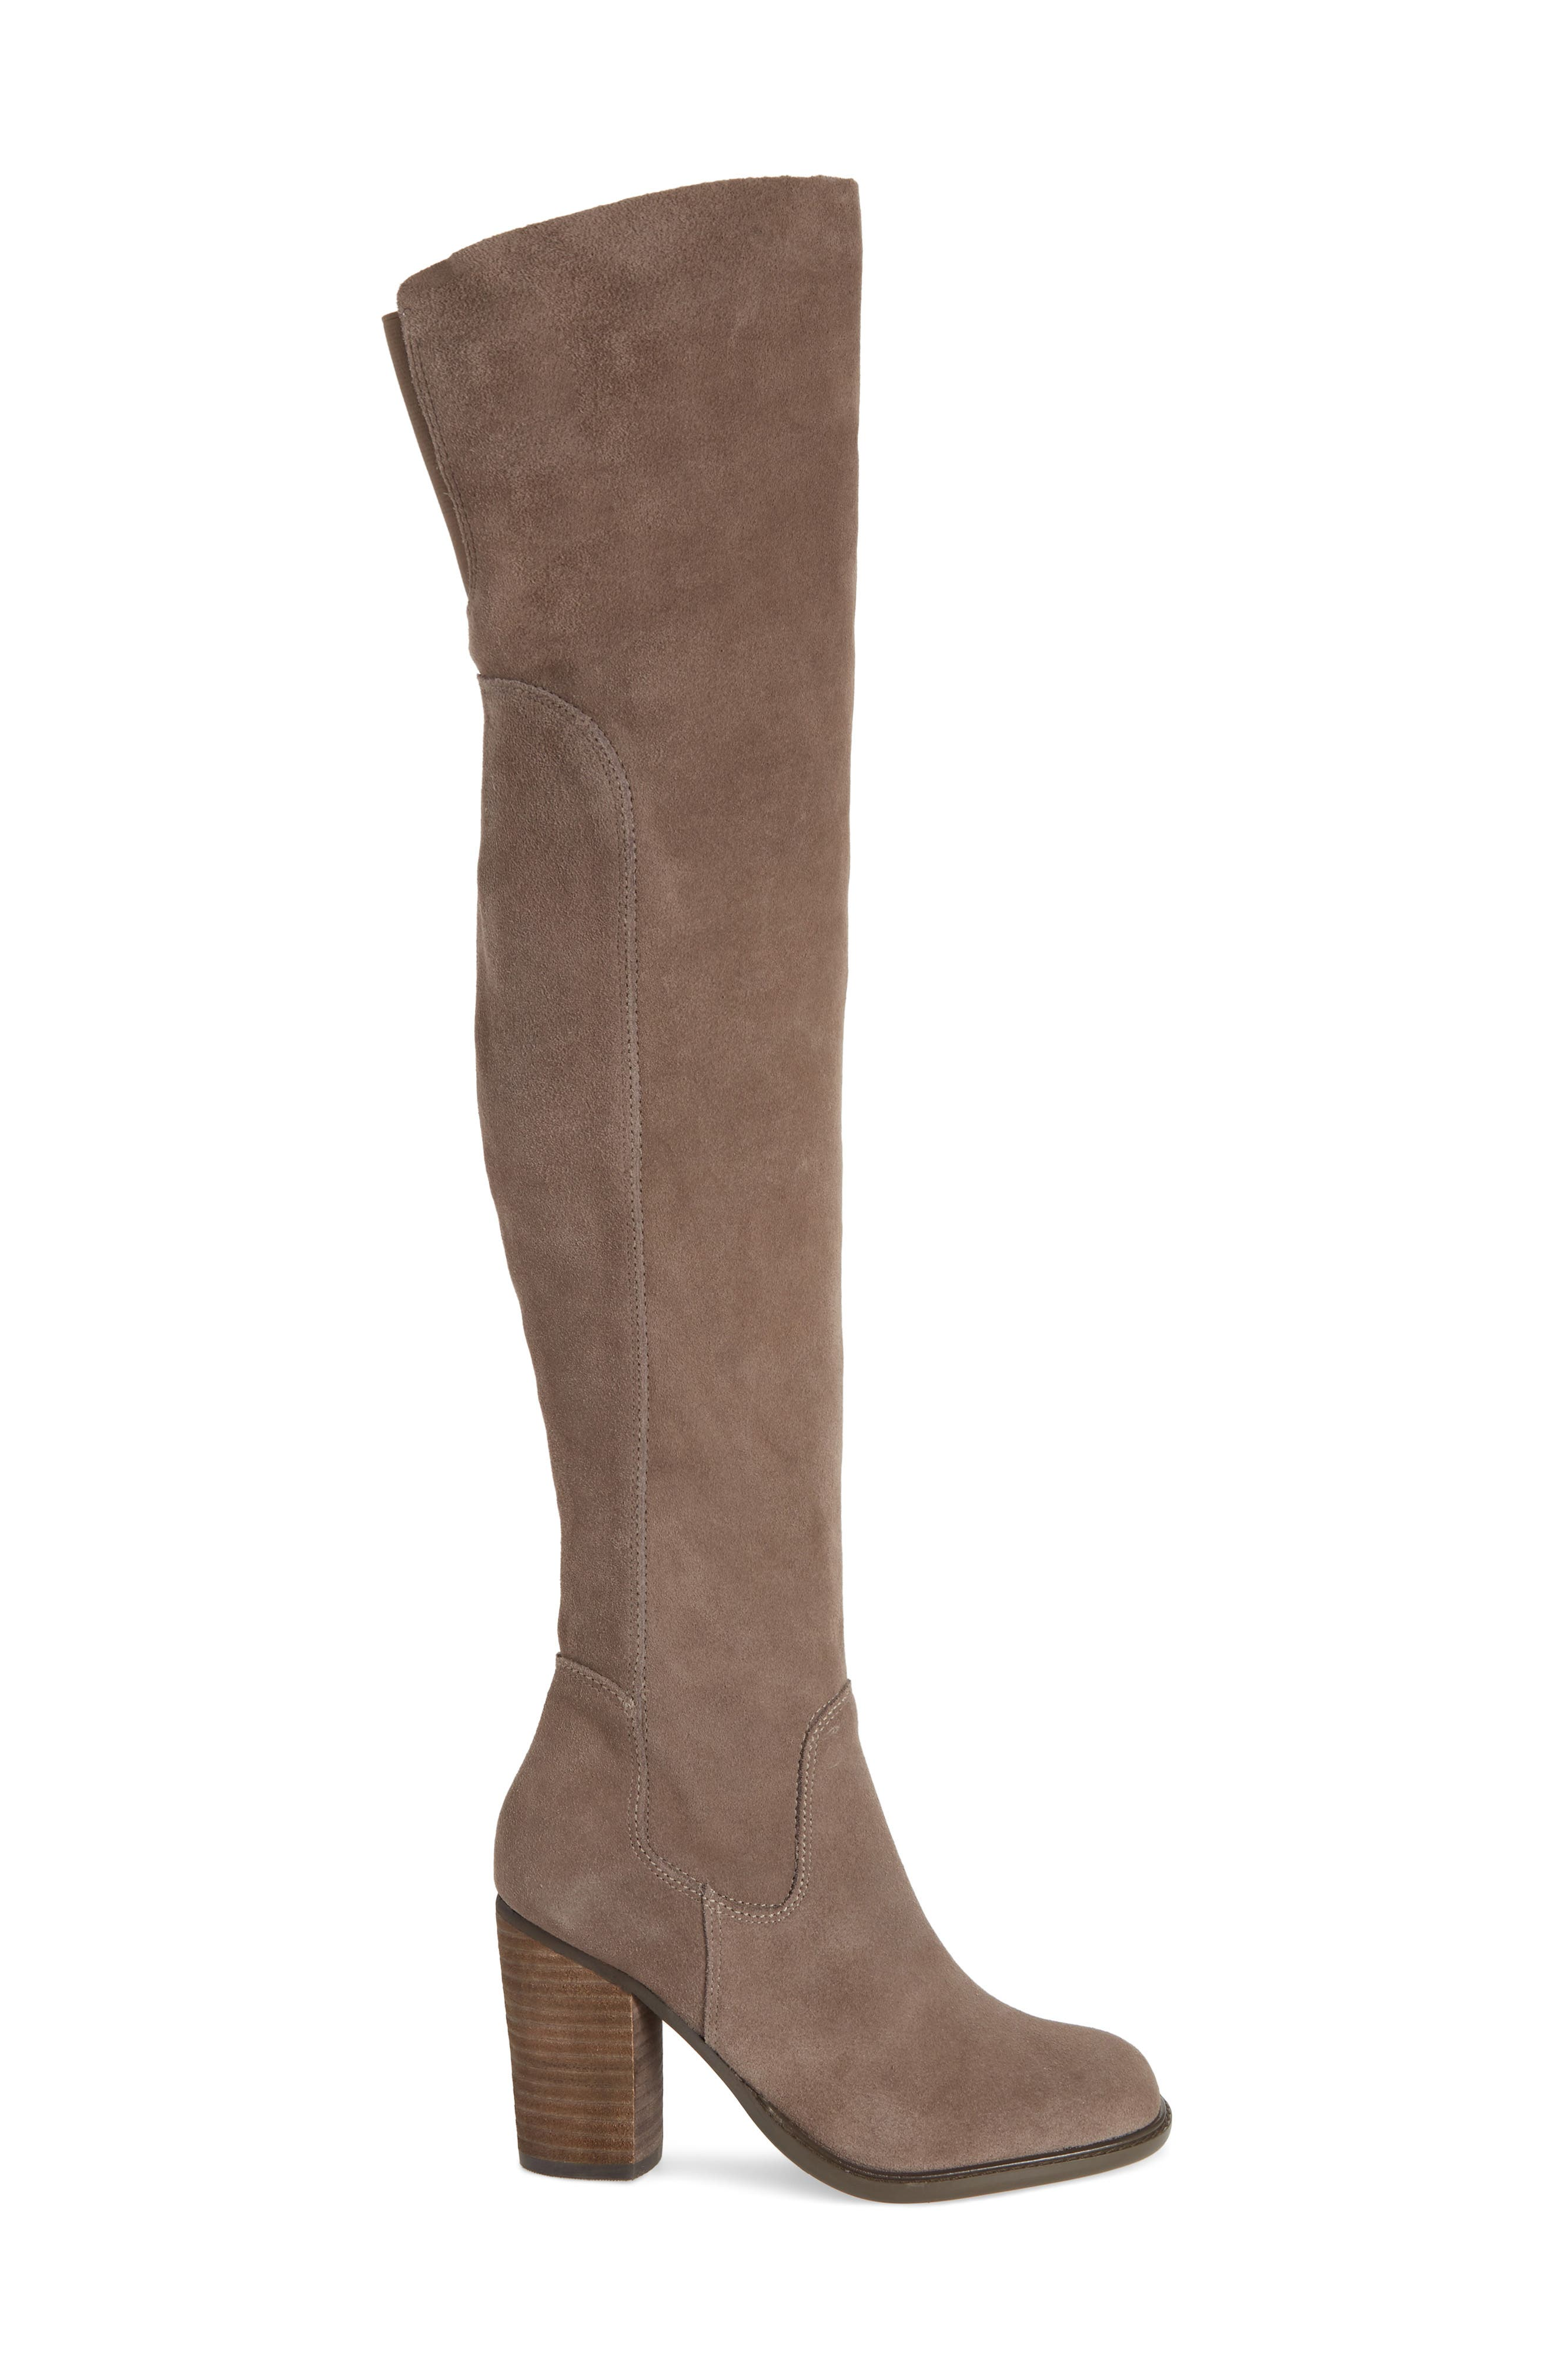 KELSI DAGGER BROOKLYN, Logan Over the Knee Boot, Alternate thumbnail 3, color, WARM GREY SUEDE